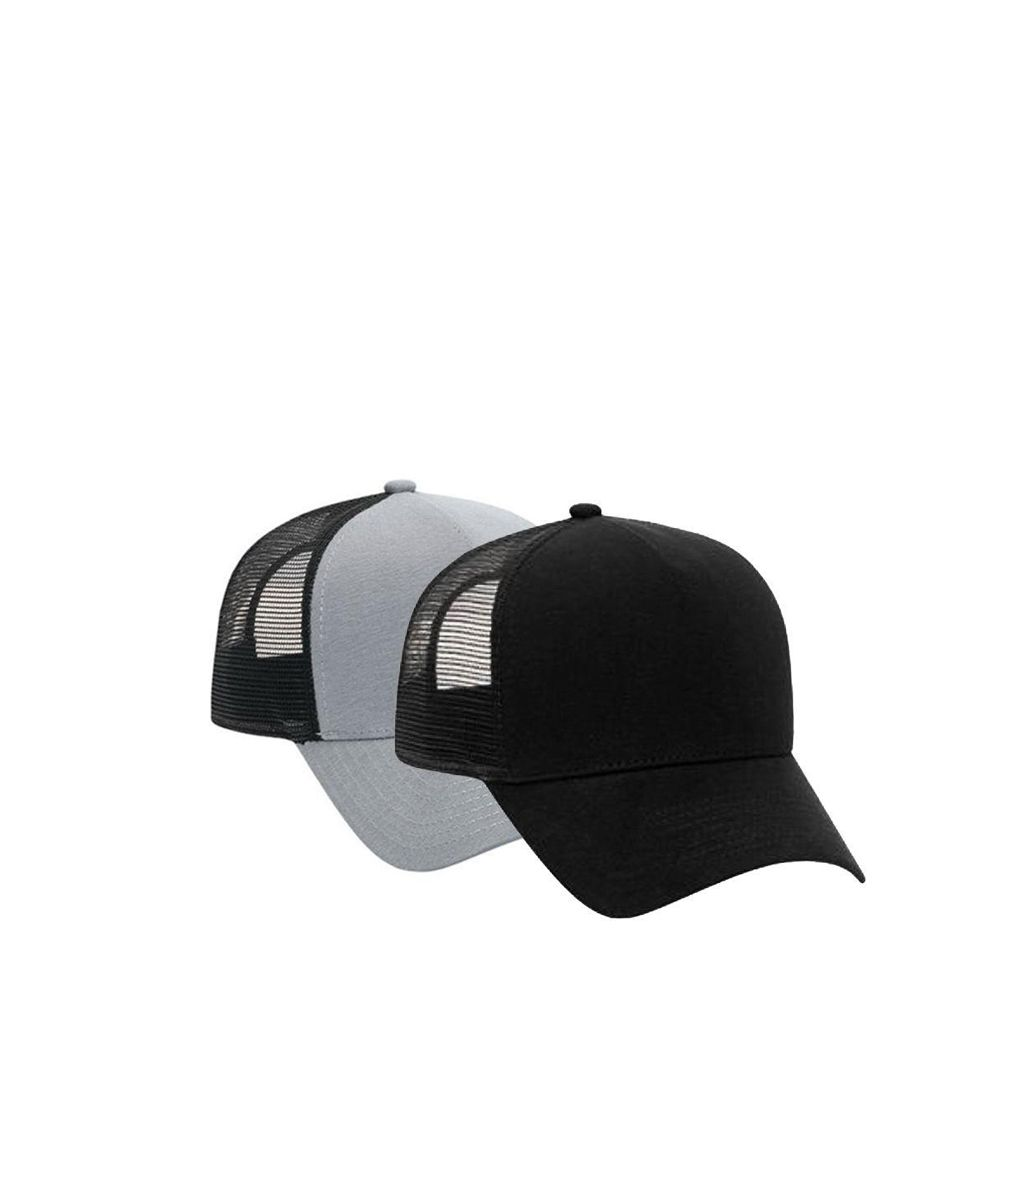 Super Comfy Ponytail Baseball Cap Inspire uplift exclusive! Perfect timing  for spring   summer! b1283c1cf95b